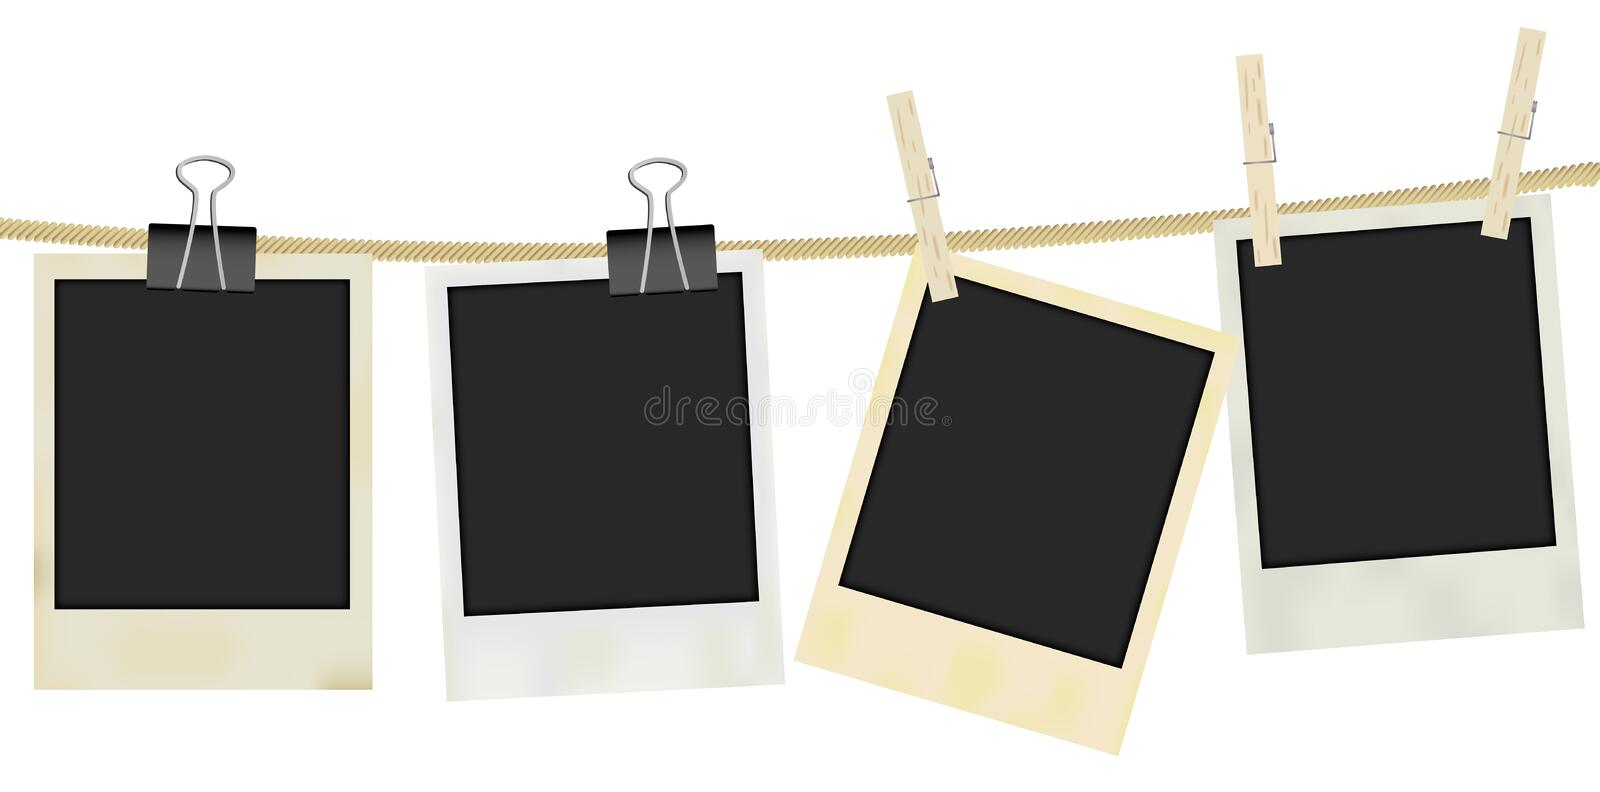 Vector Photo Frames stock illustration